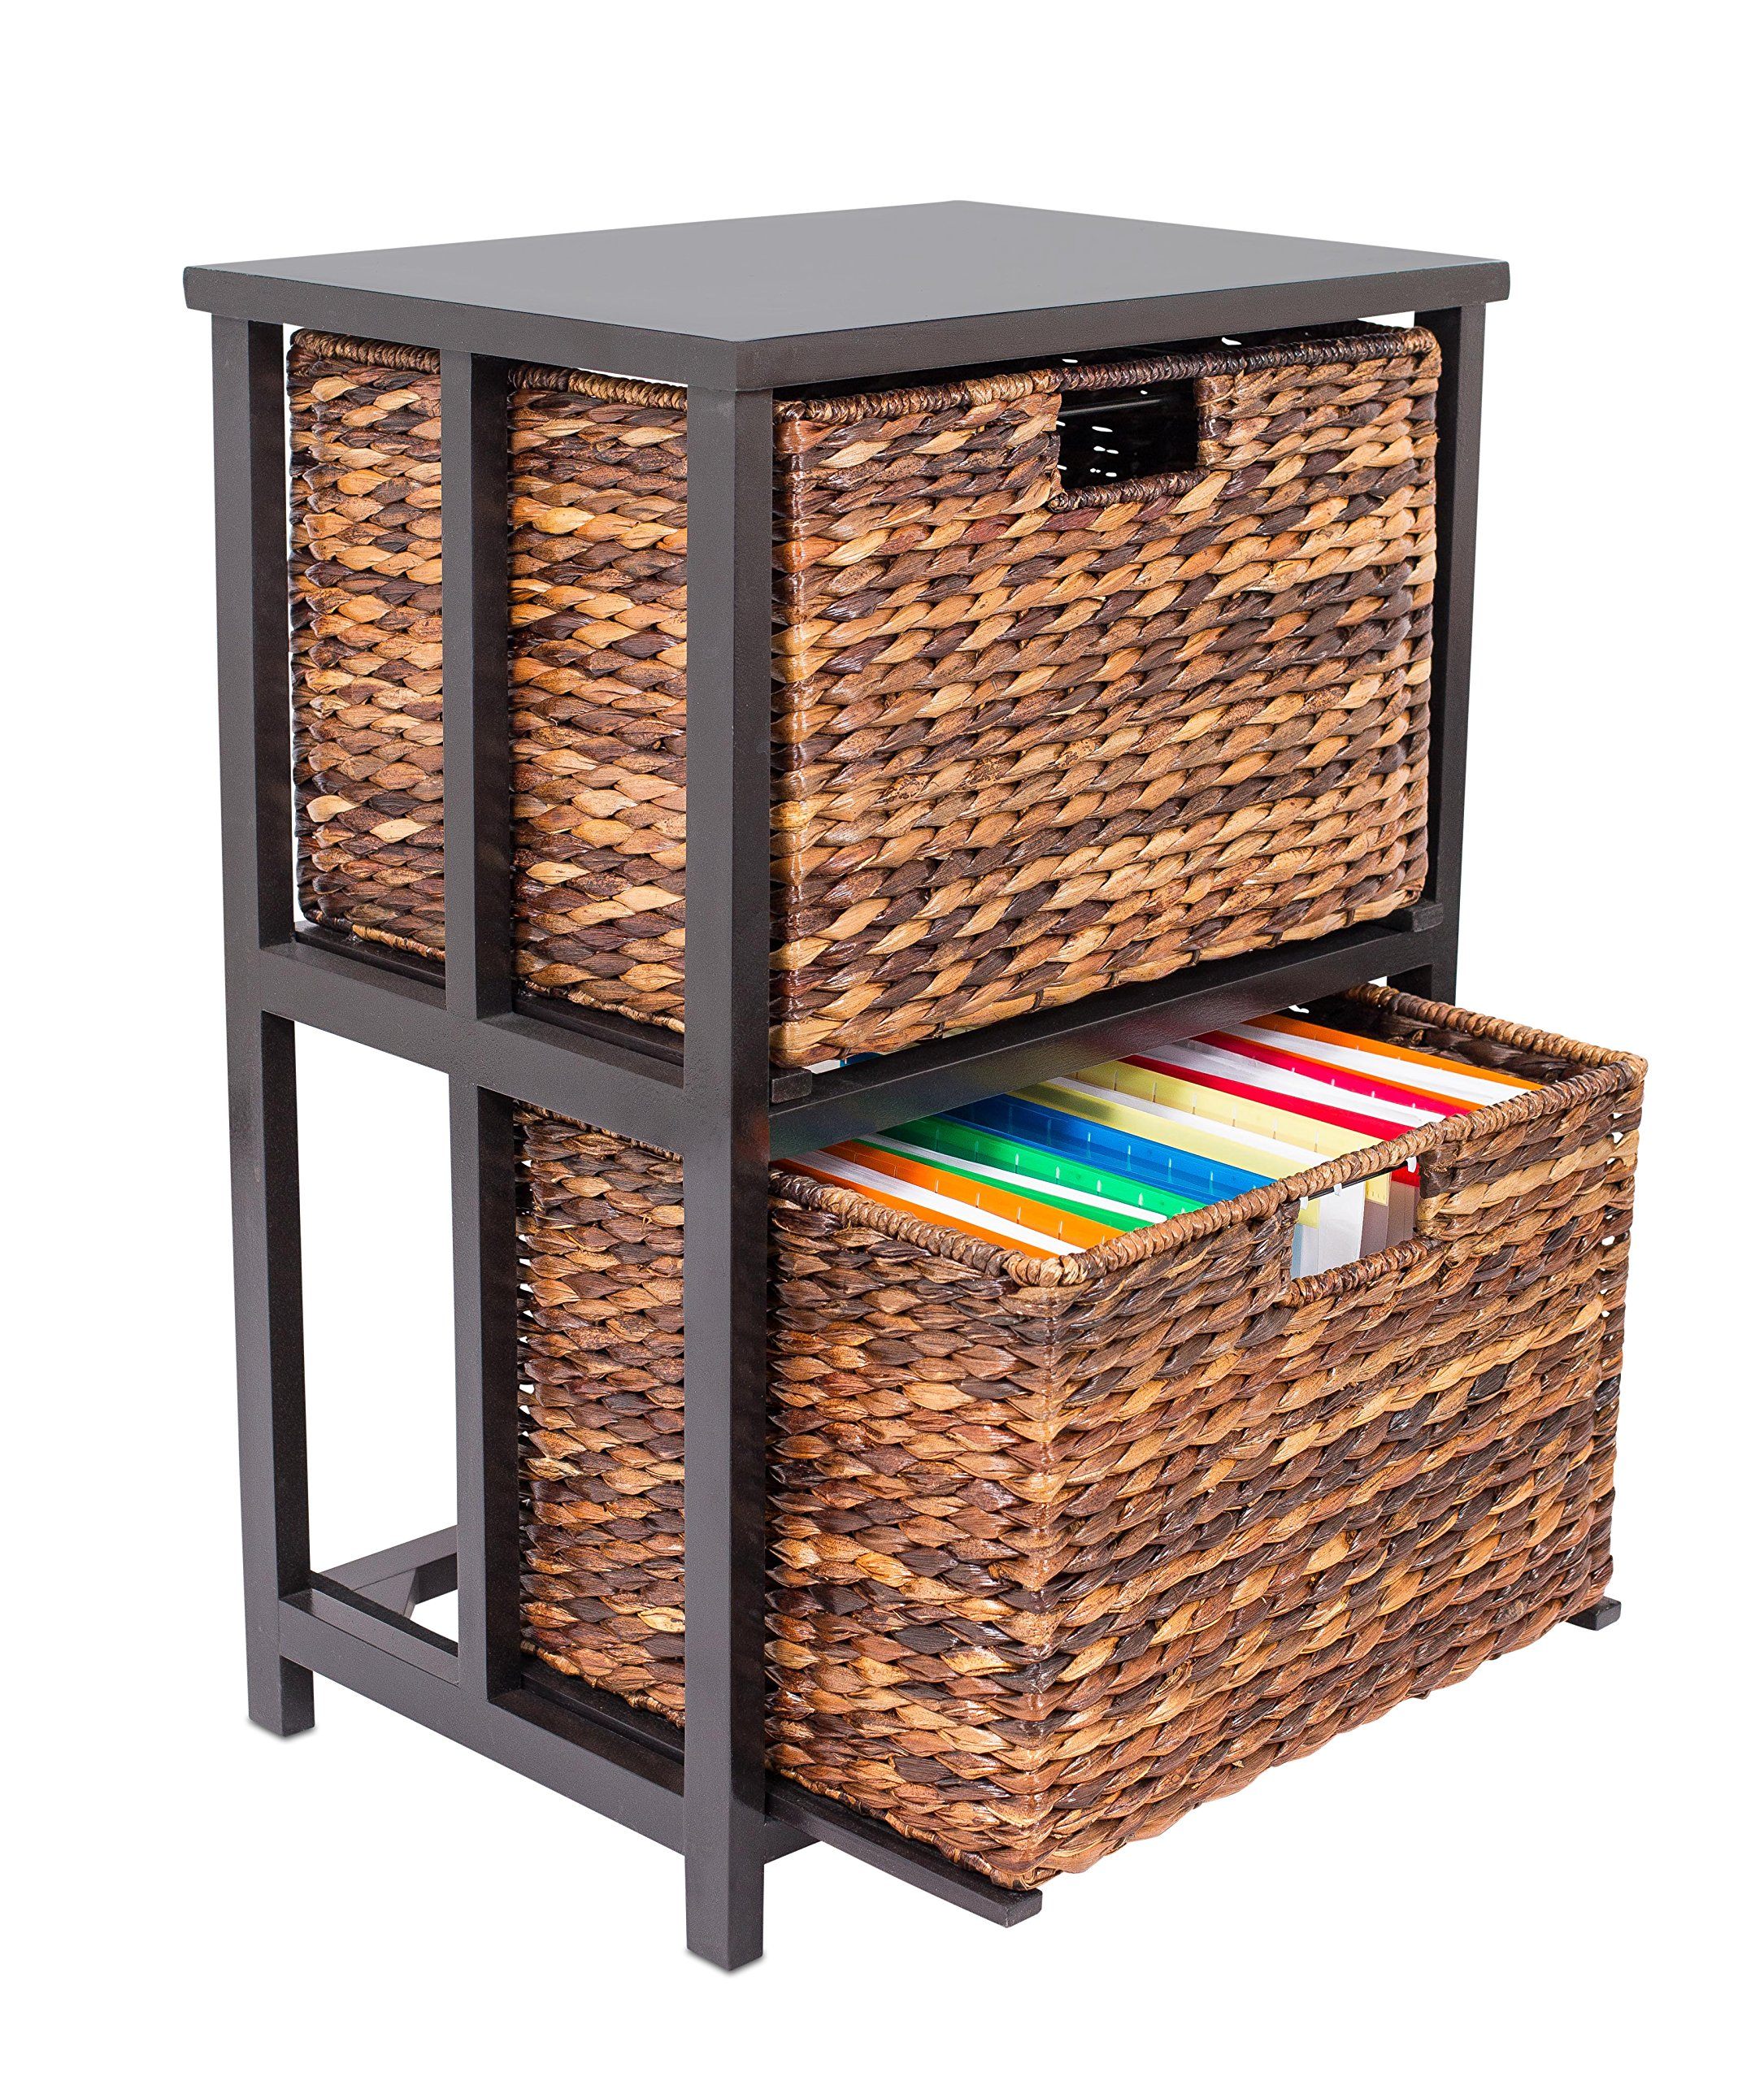 BirdRock Home Abaca 2 Tier File Cubby Cabinet - Vertical Storage Furniture - 2 Drawers - Office Décor - Home Decorative Box Filing - Natural Wood - Delivered Fully Assembled - Hanging Letter and Legal by BIRDROCK HOME